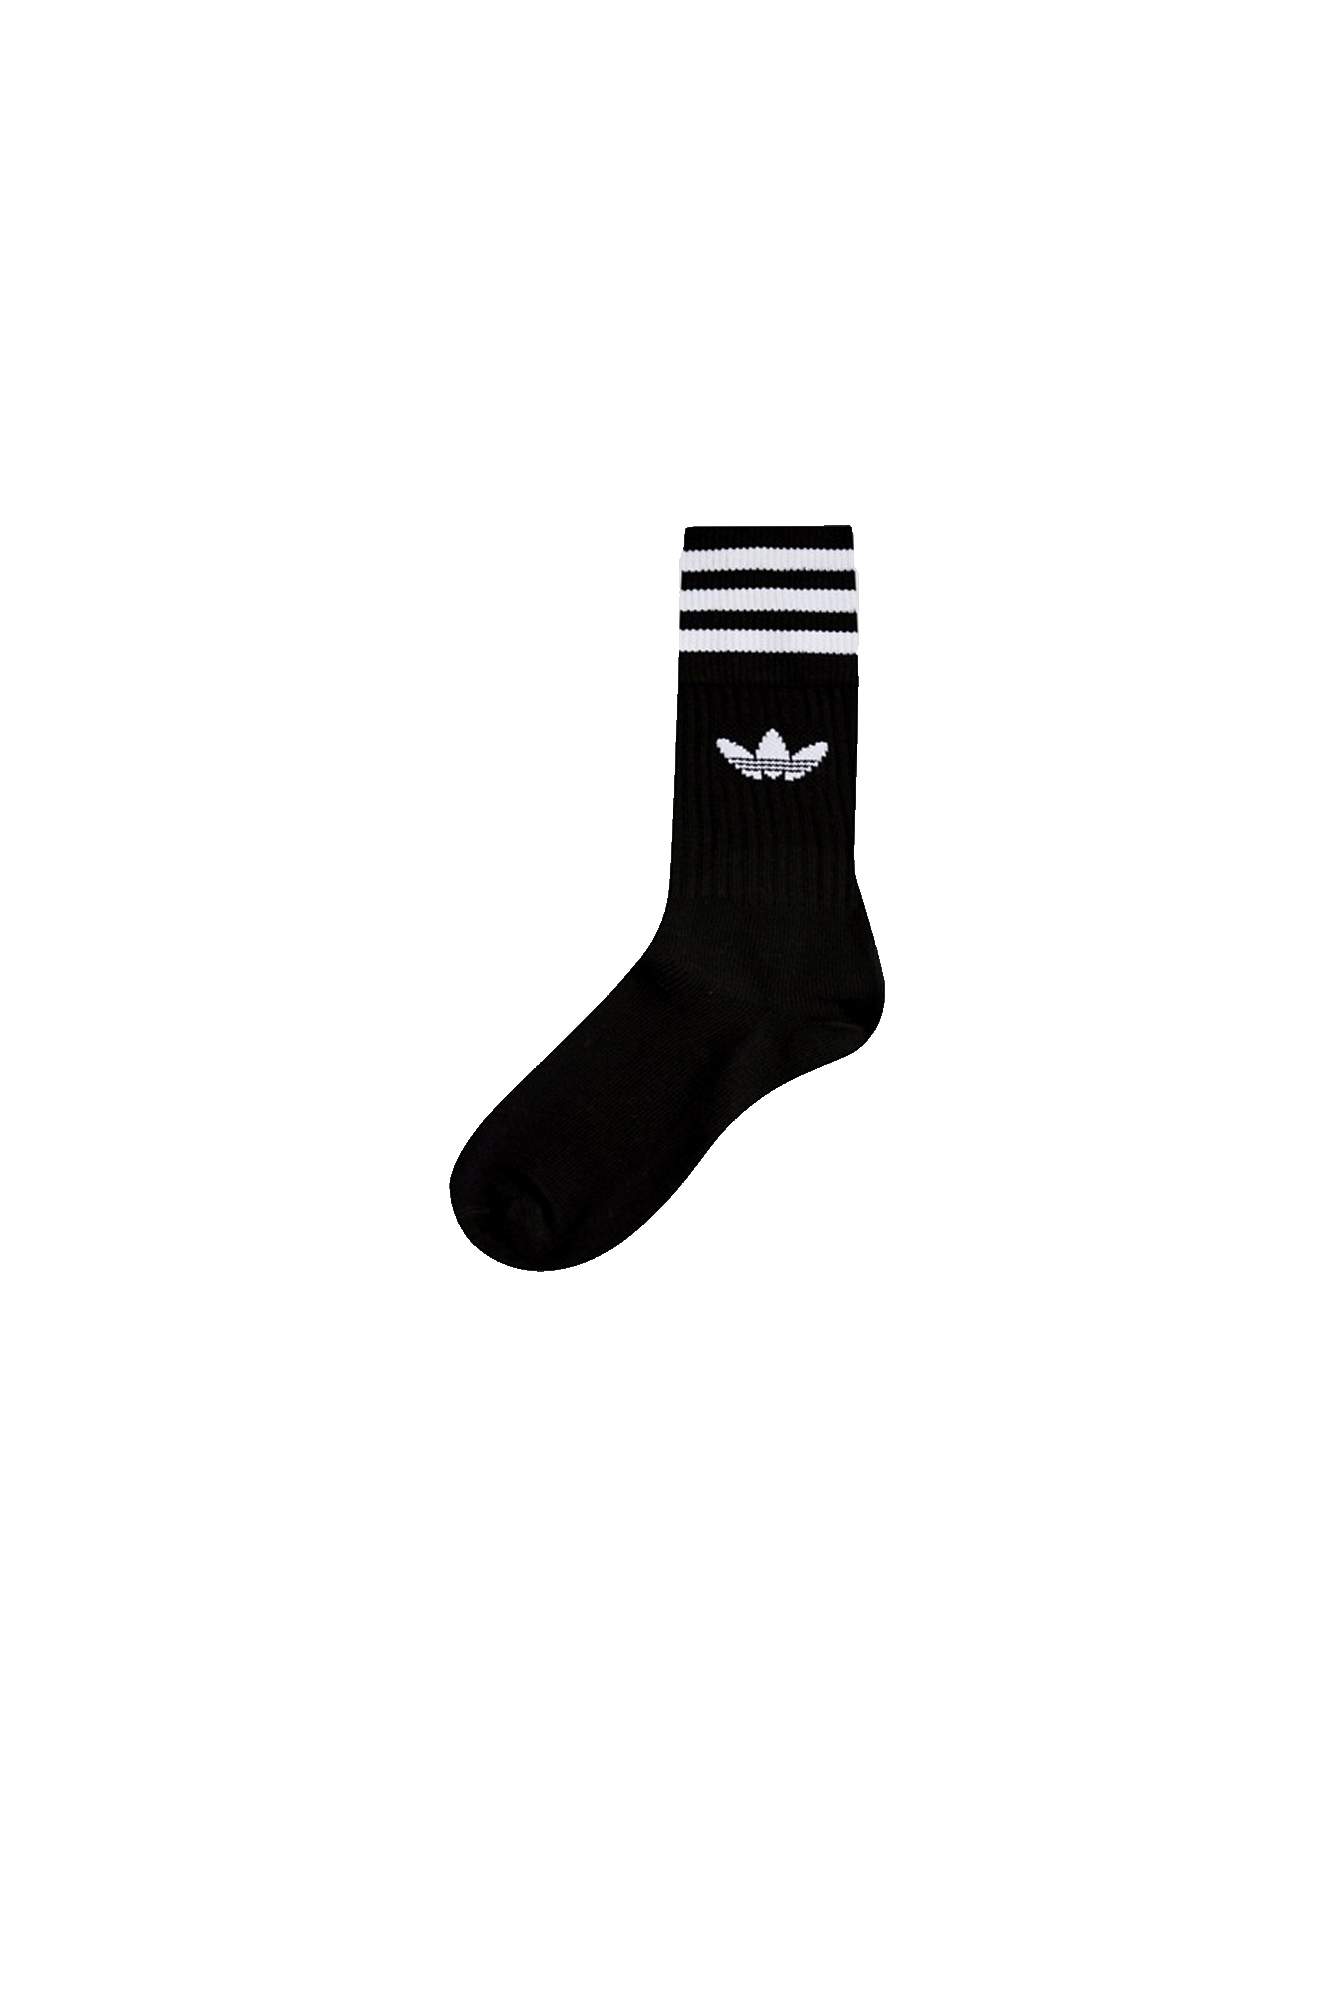 Adidas Originals Calzini Solid Crew Sock Nero S21490#000#BLK#43-46 - One Block Down